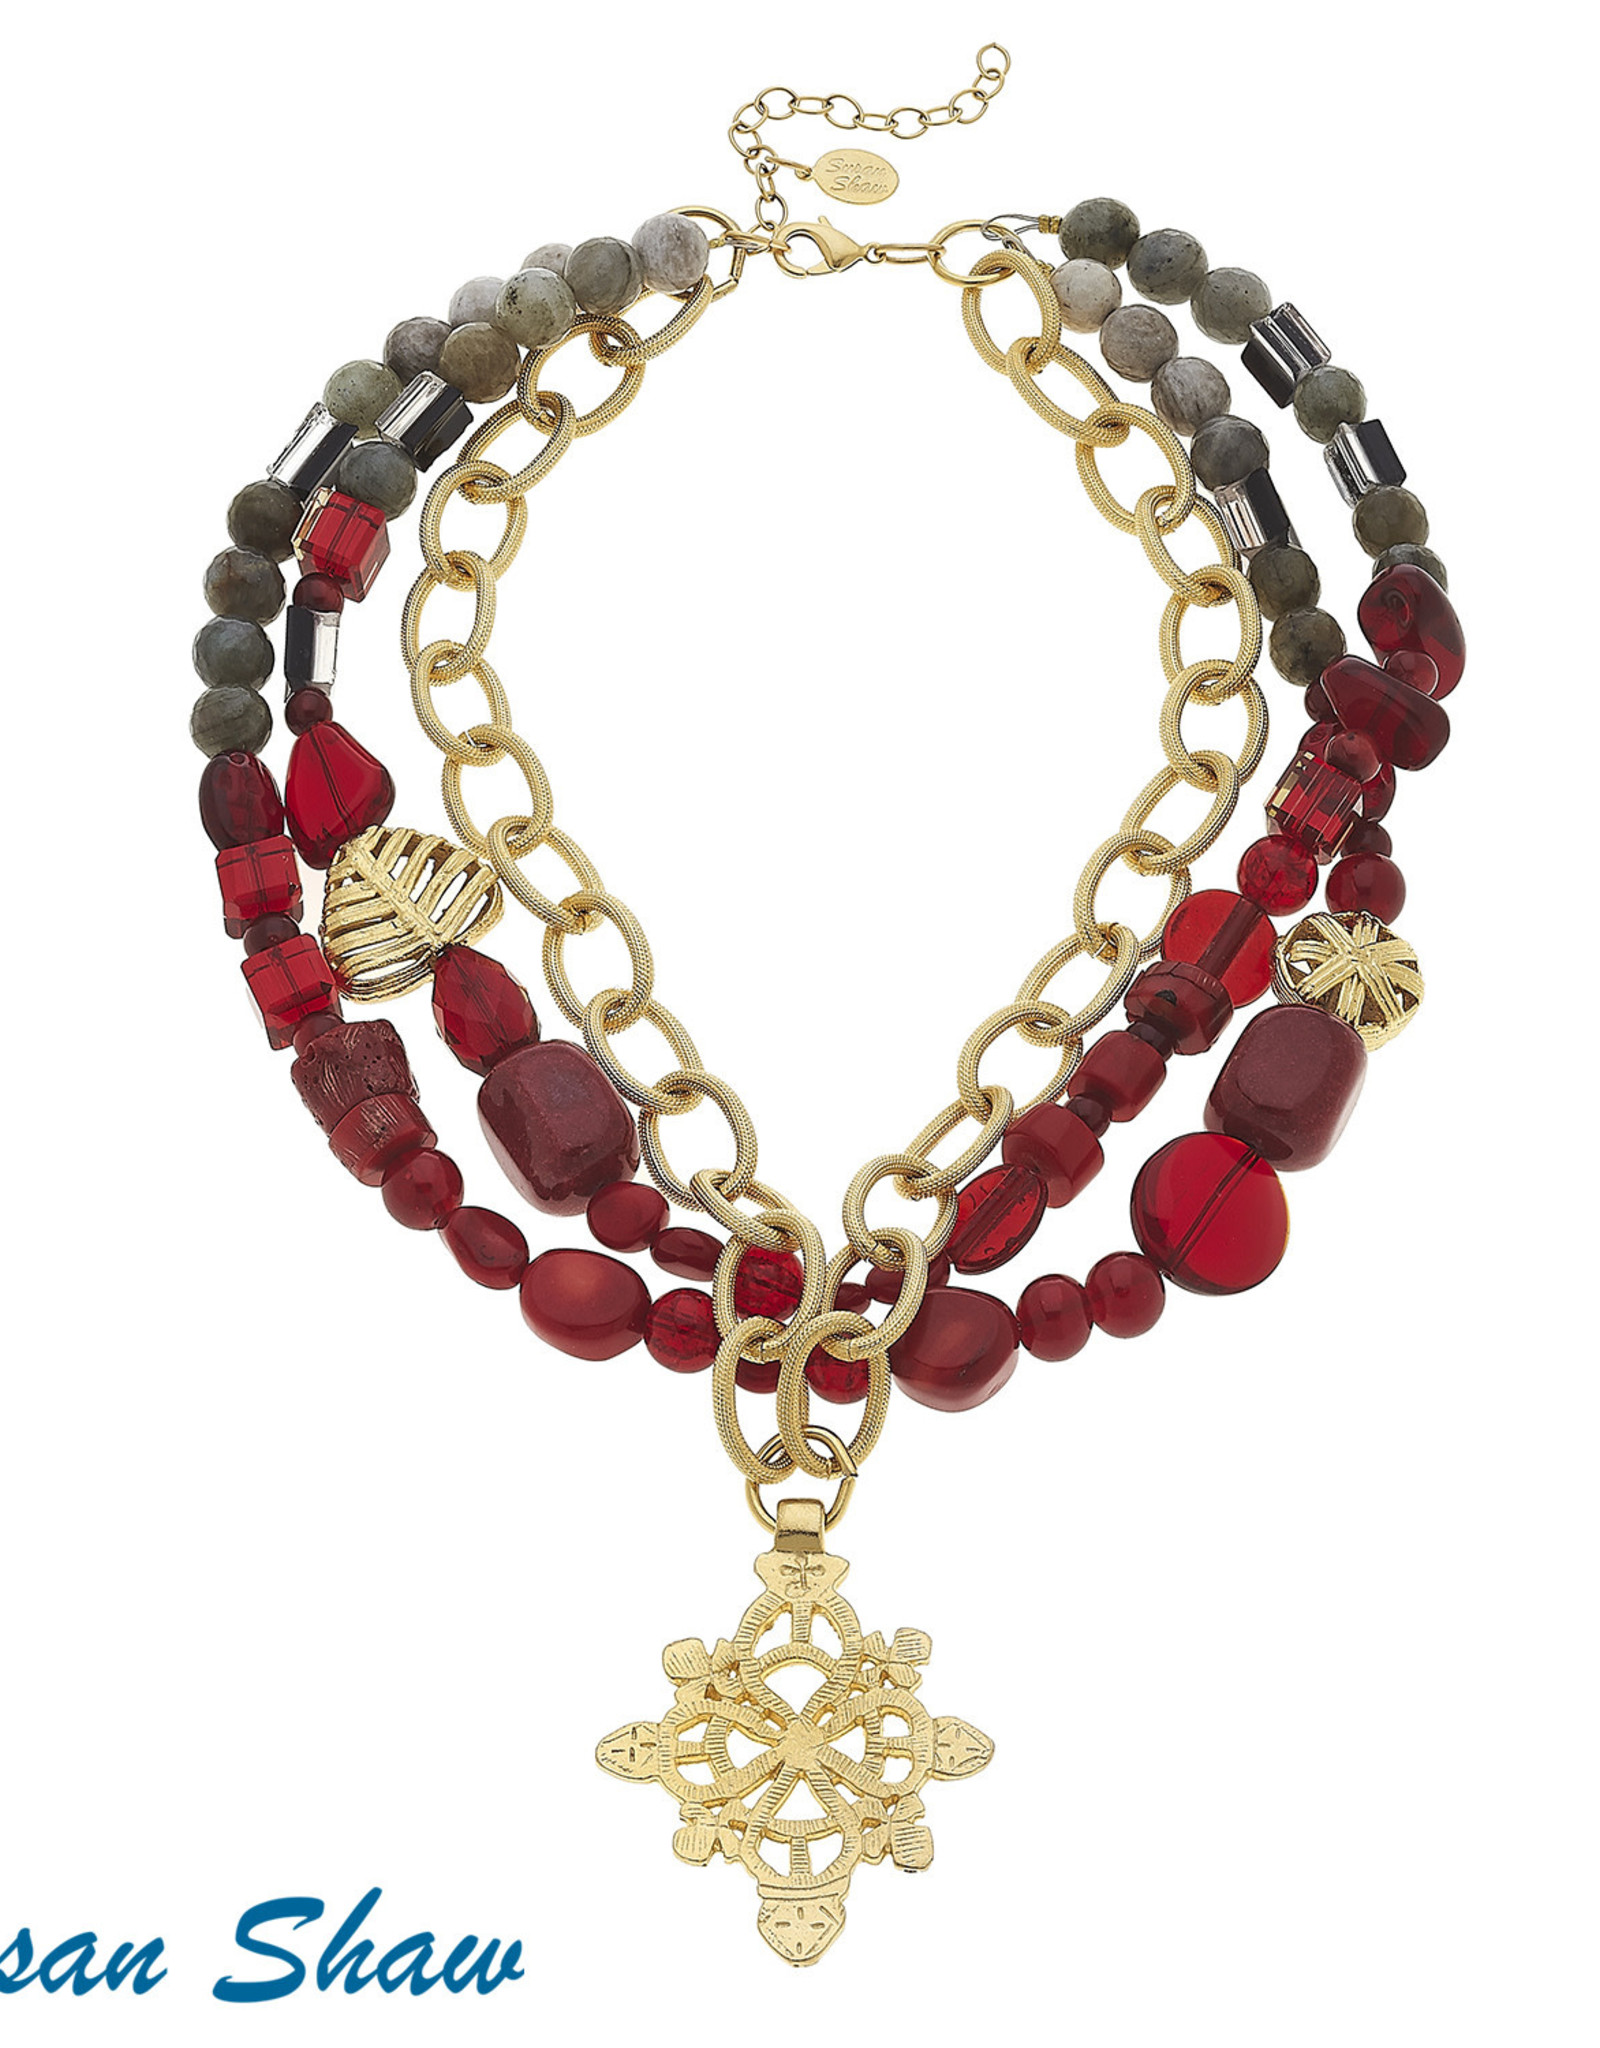 Susan Shaw Gold Cross & Beaded Necklace